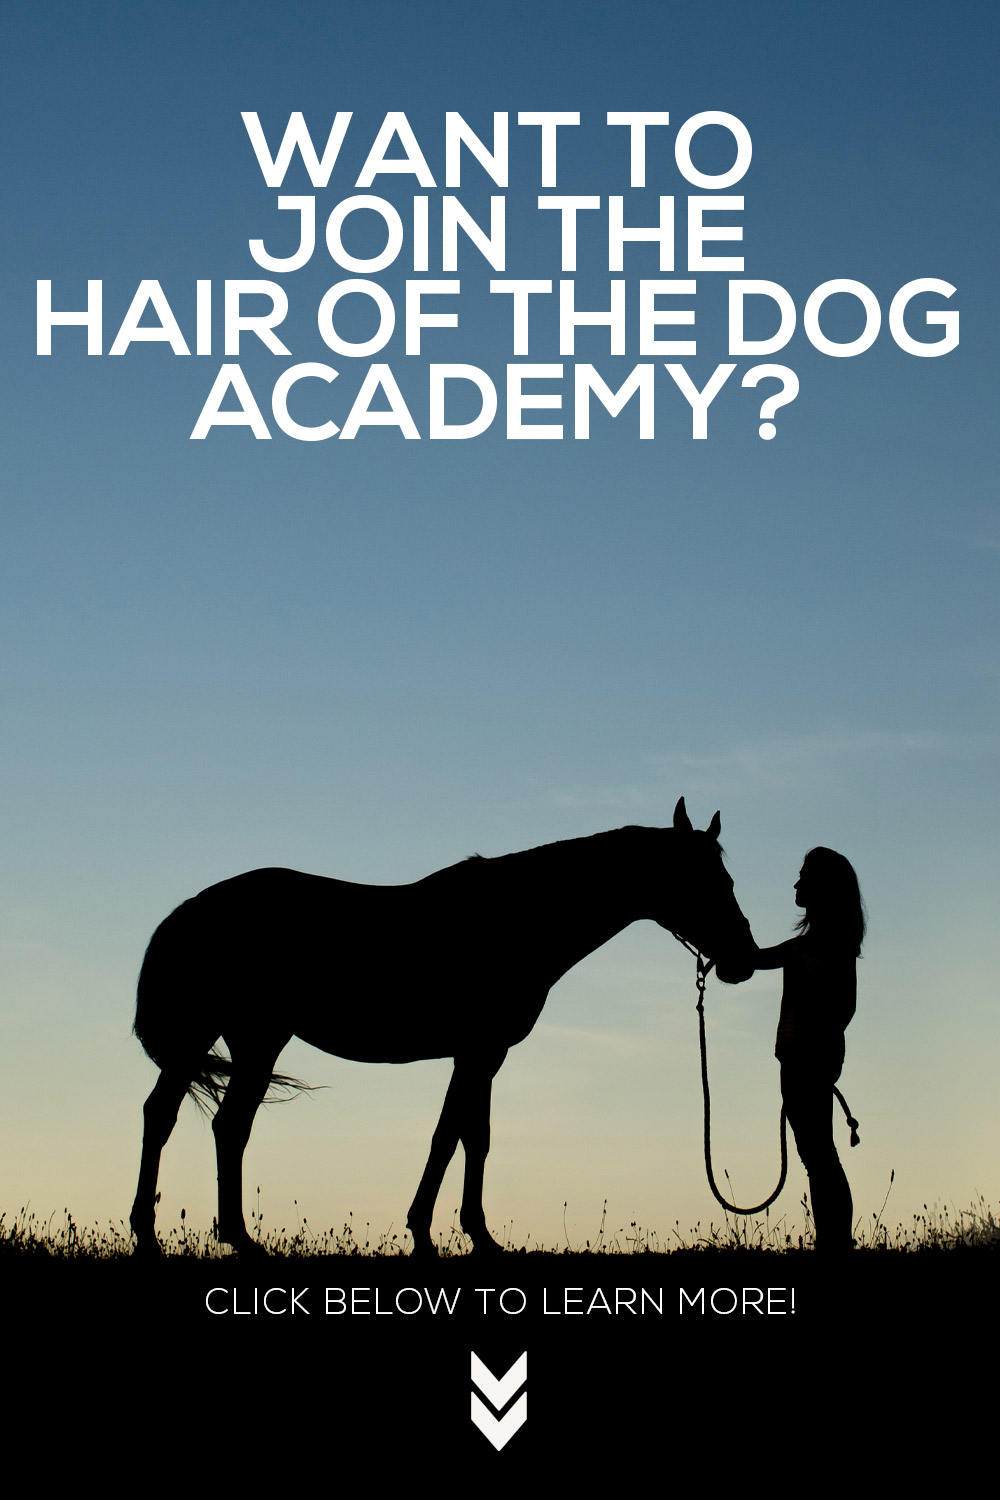 Hair of the Dog Academy